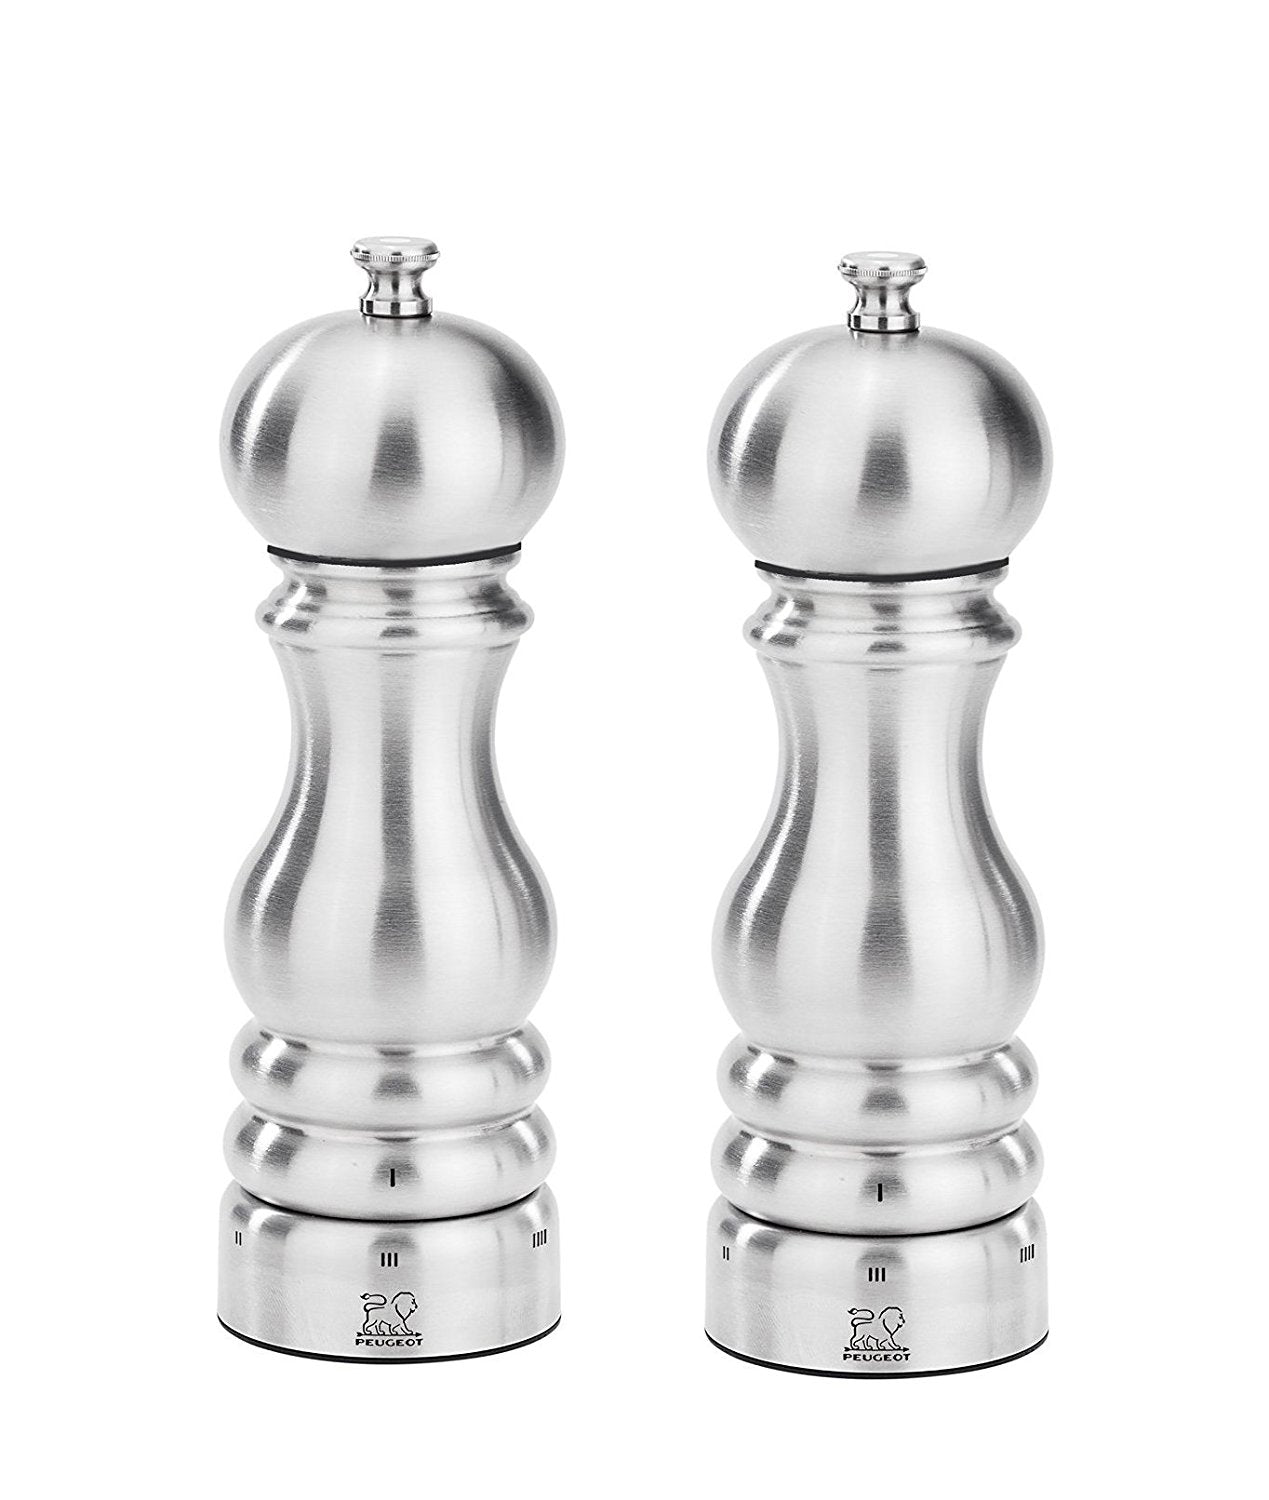 Peugeot Paris Chef Duo Salt and Pepper Mills Set Stainless Steel 18cm